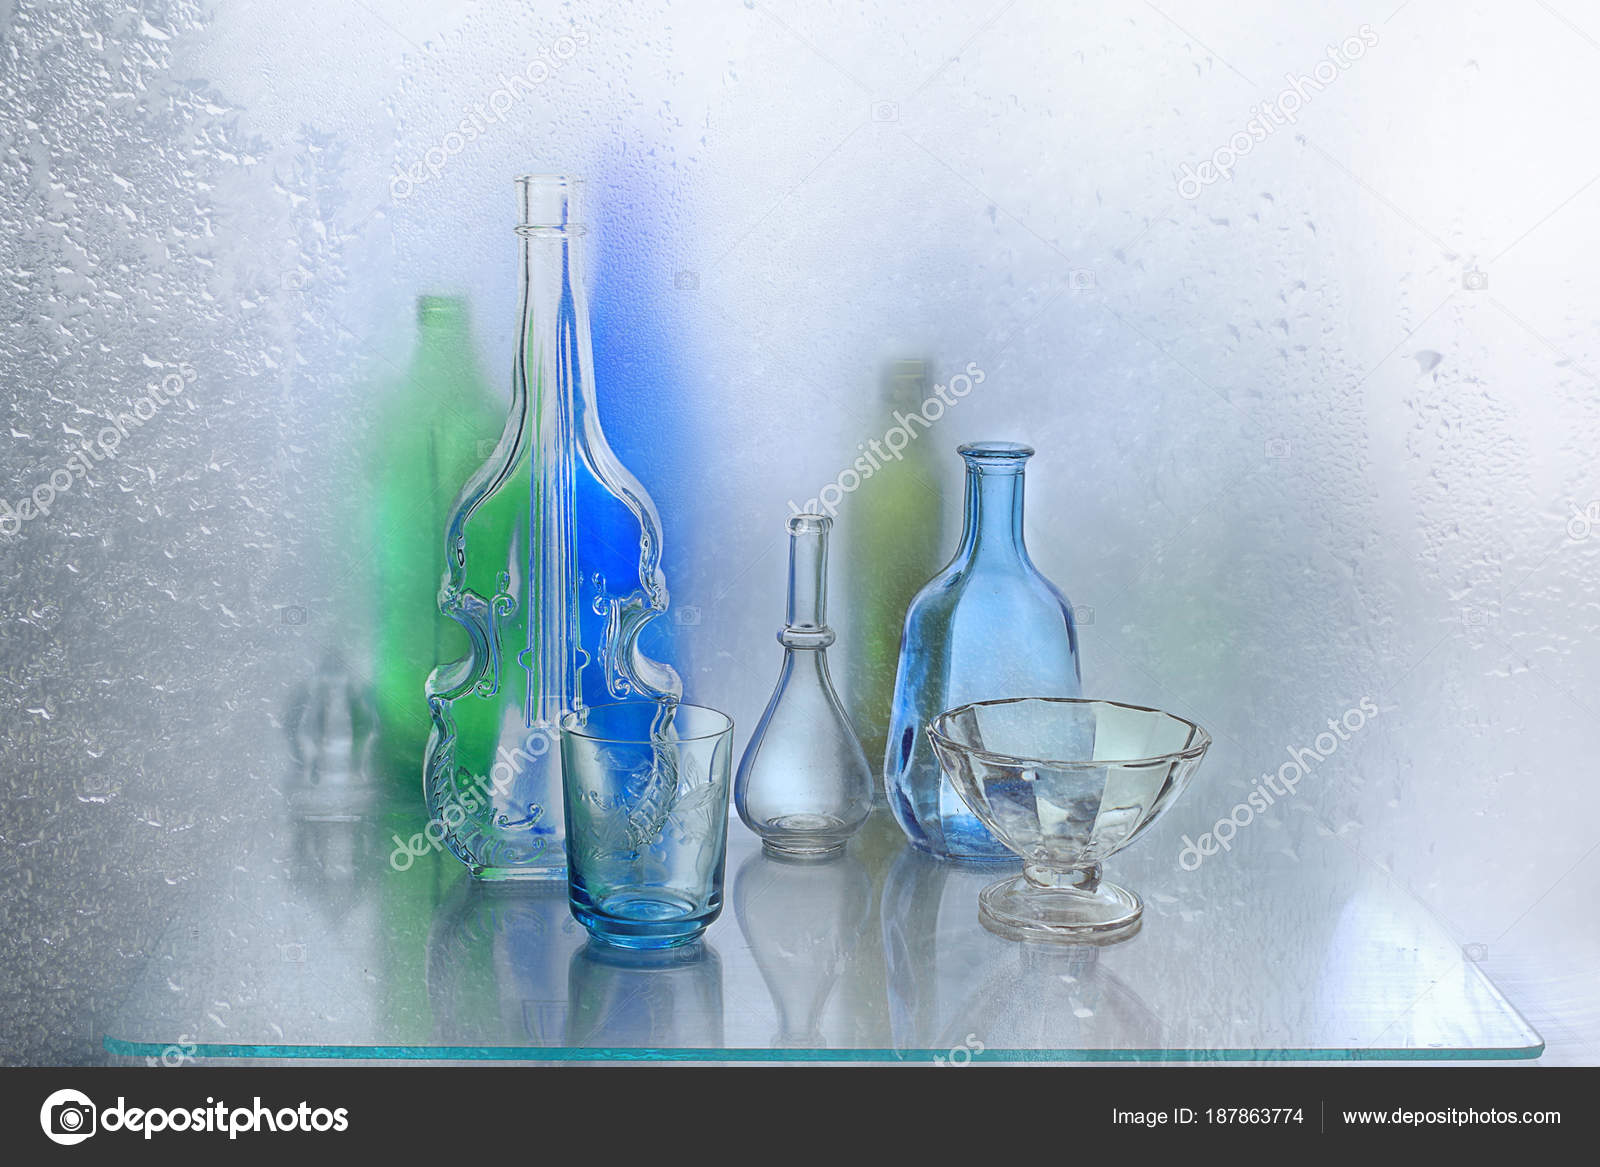 Interesting Bottles Glass Vases Bottles Interesting Lying Window Sill Isolated Light